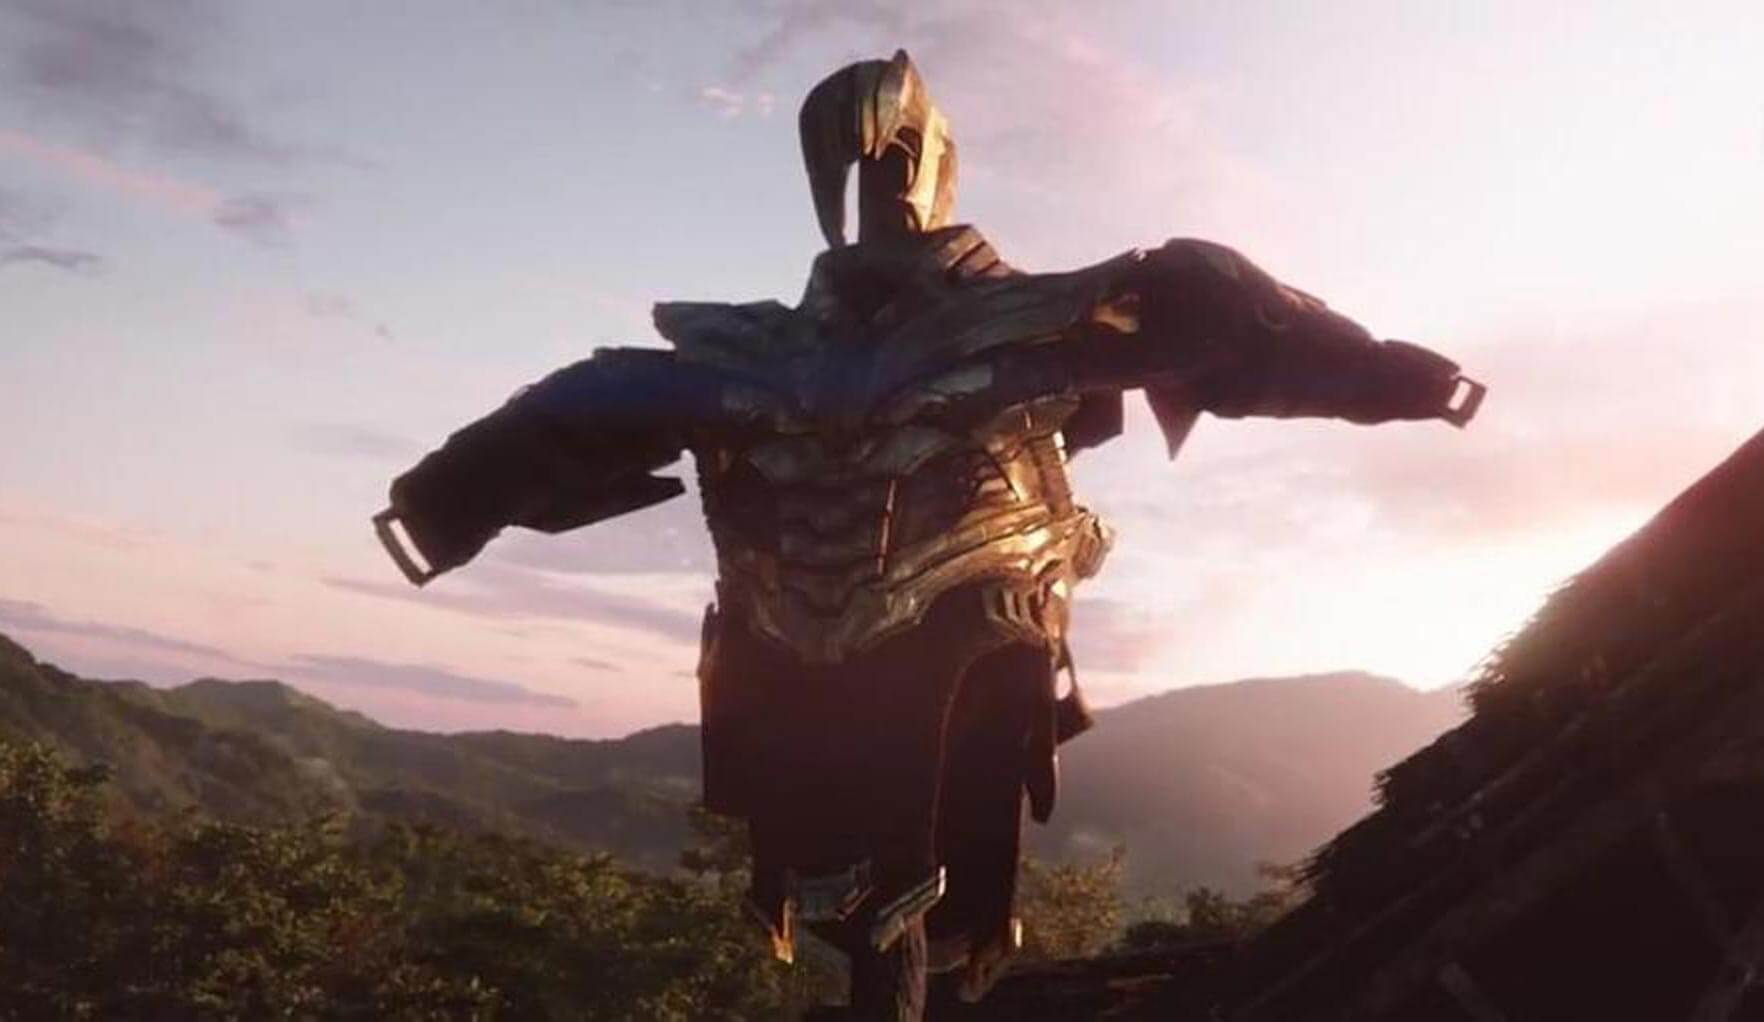 Here's How Much Footage You Can Expect To See In New 'Avengers: Endgame' Trailers